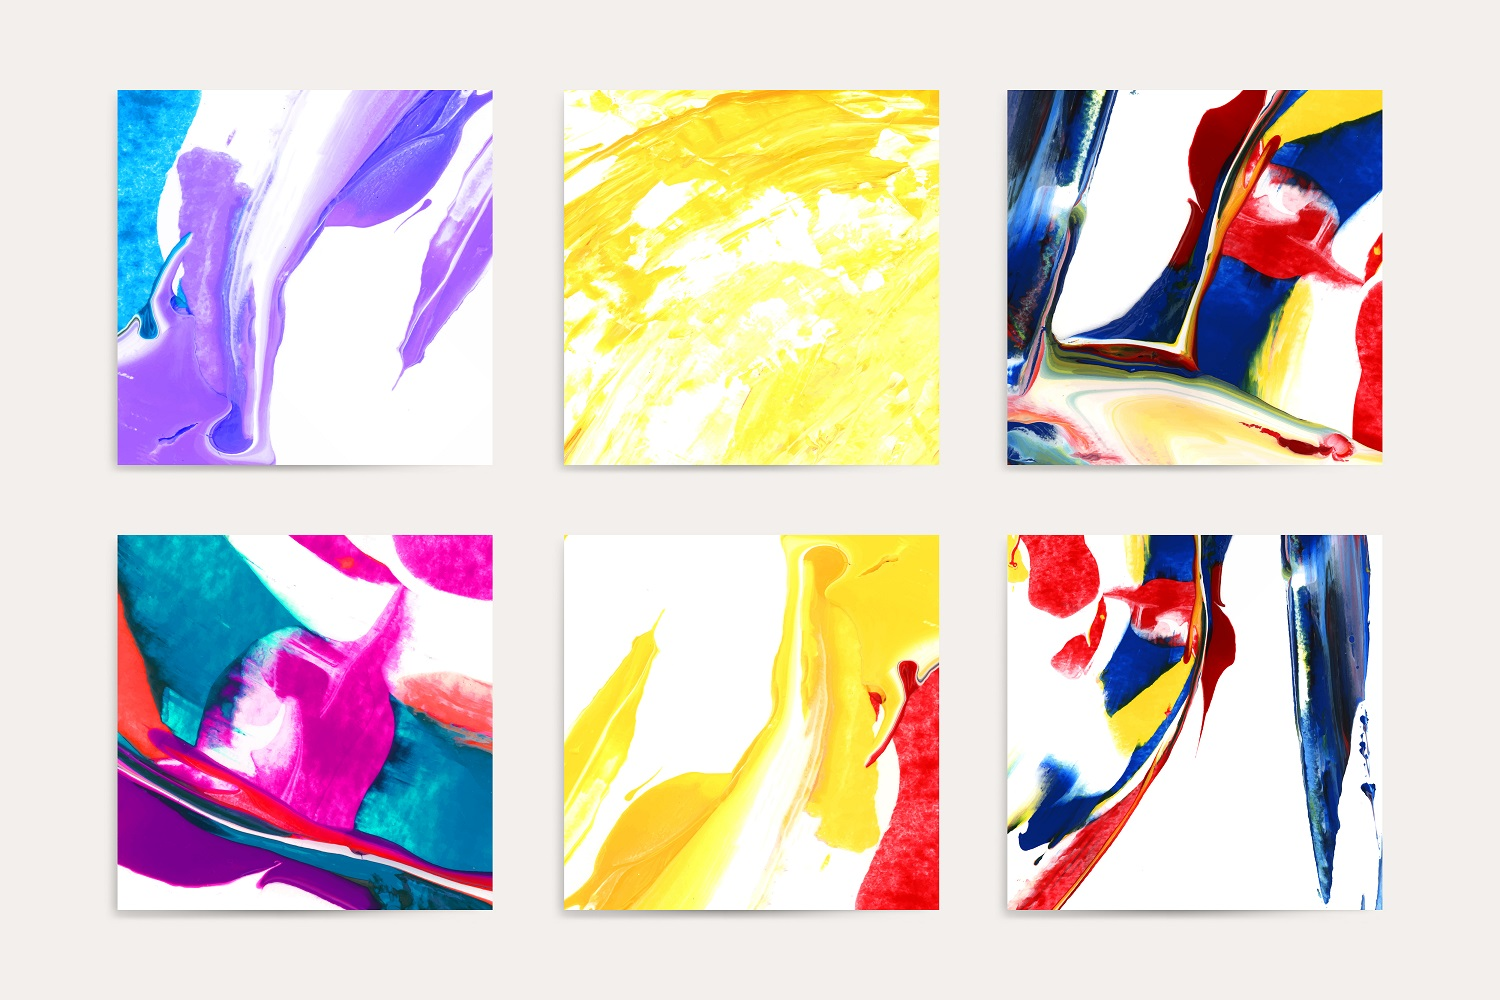 Colorful acrylic brush stroke textured background vector set